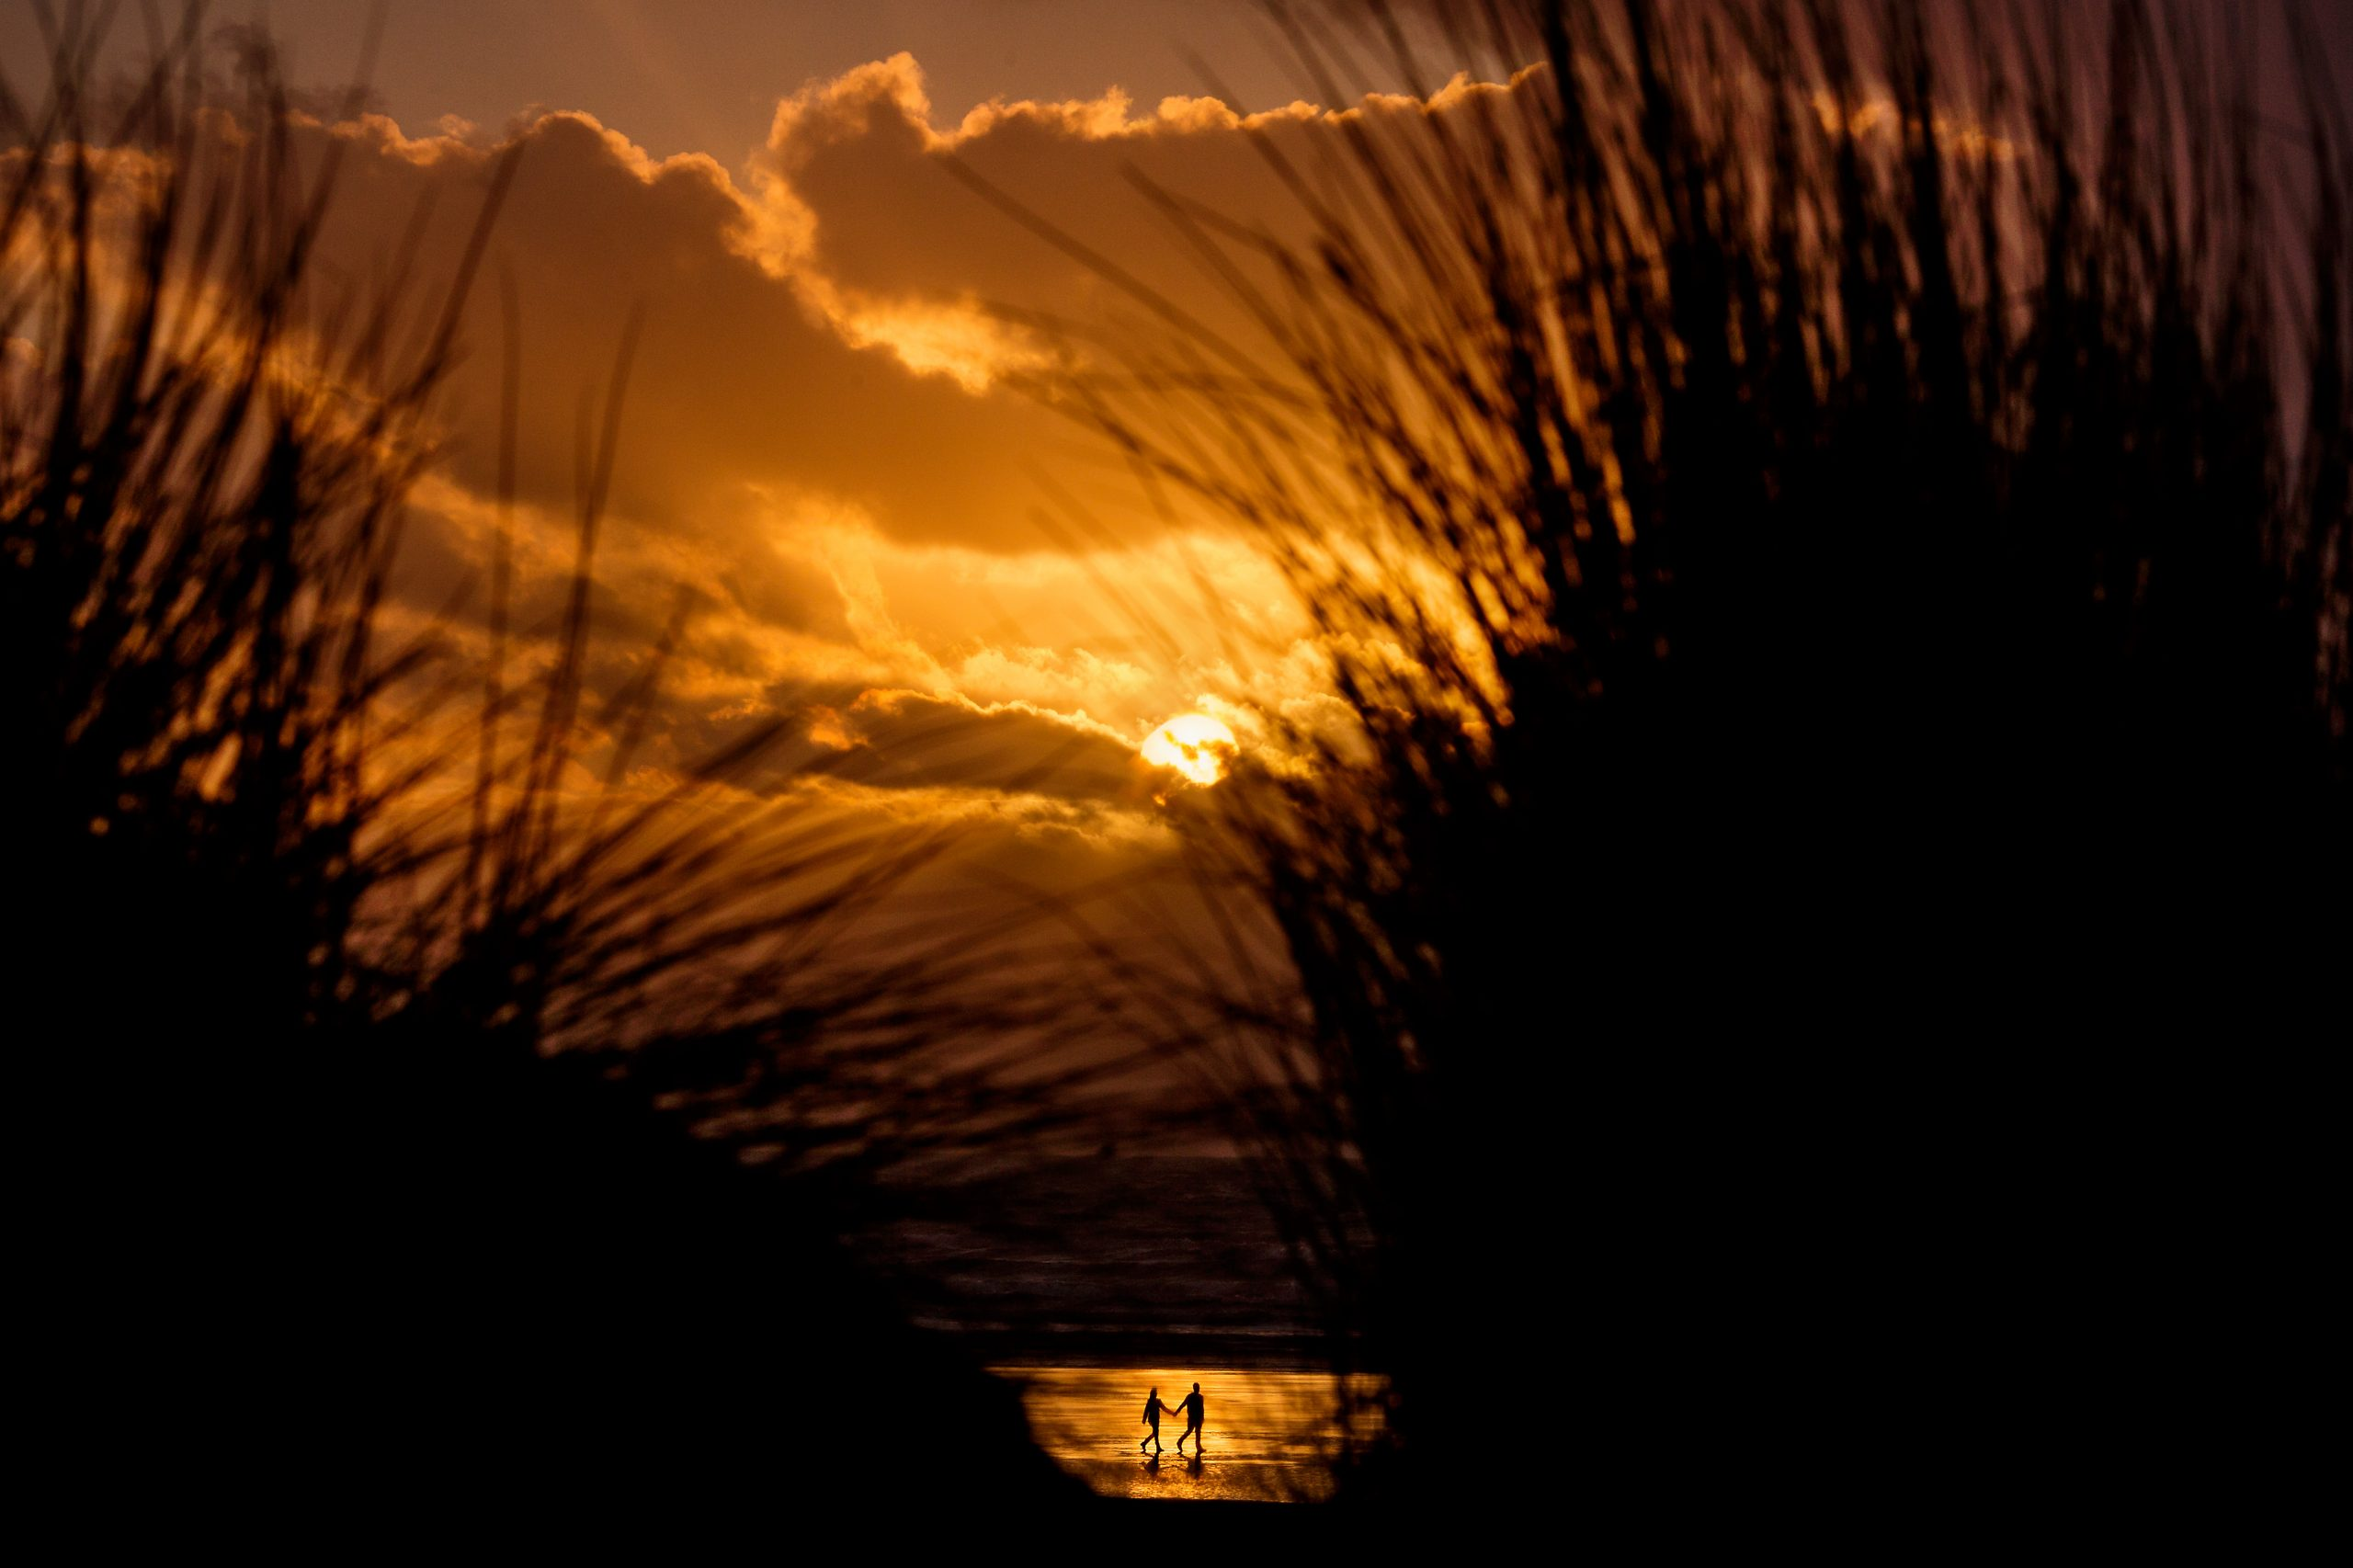 Shrouded by the silhouette of grass, a couple walk across a beach sunset, holding hands